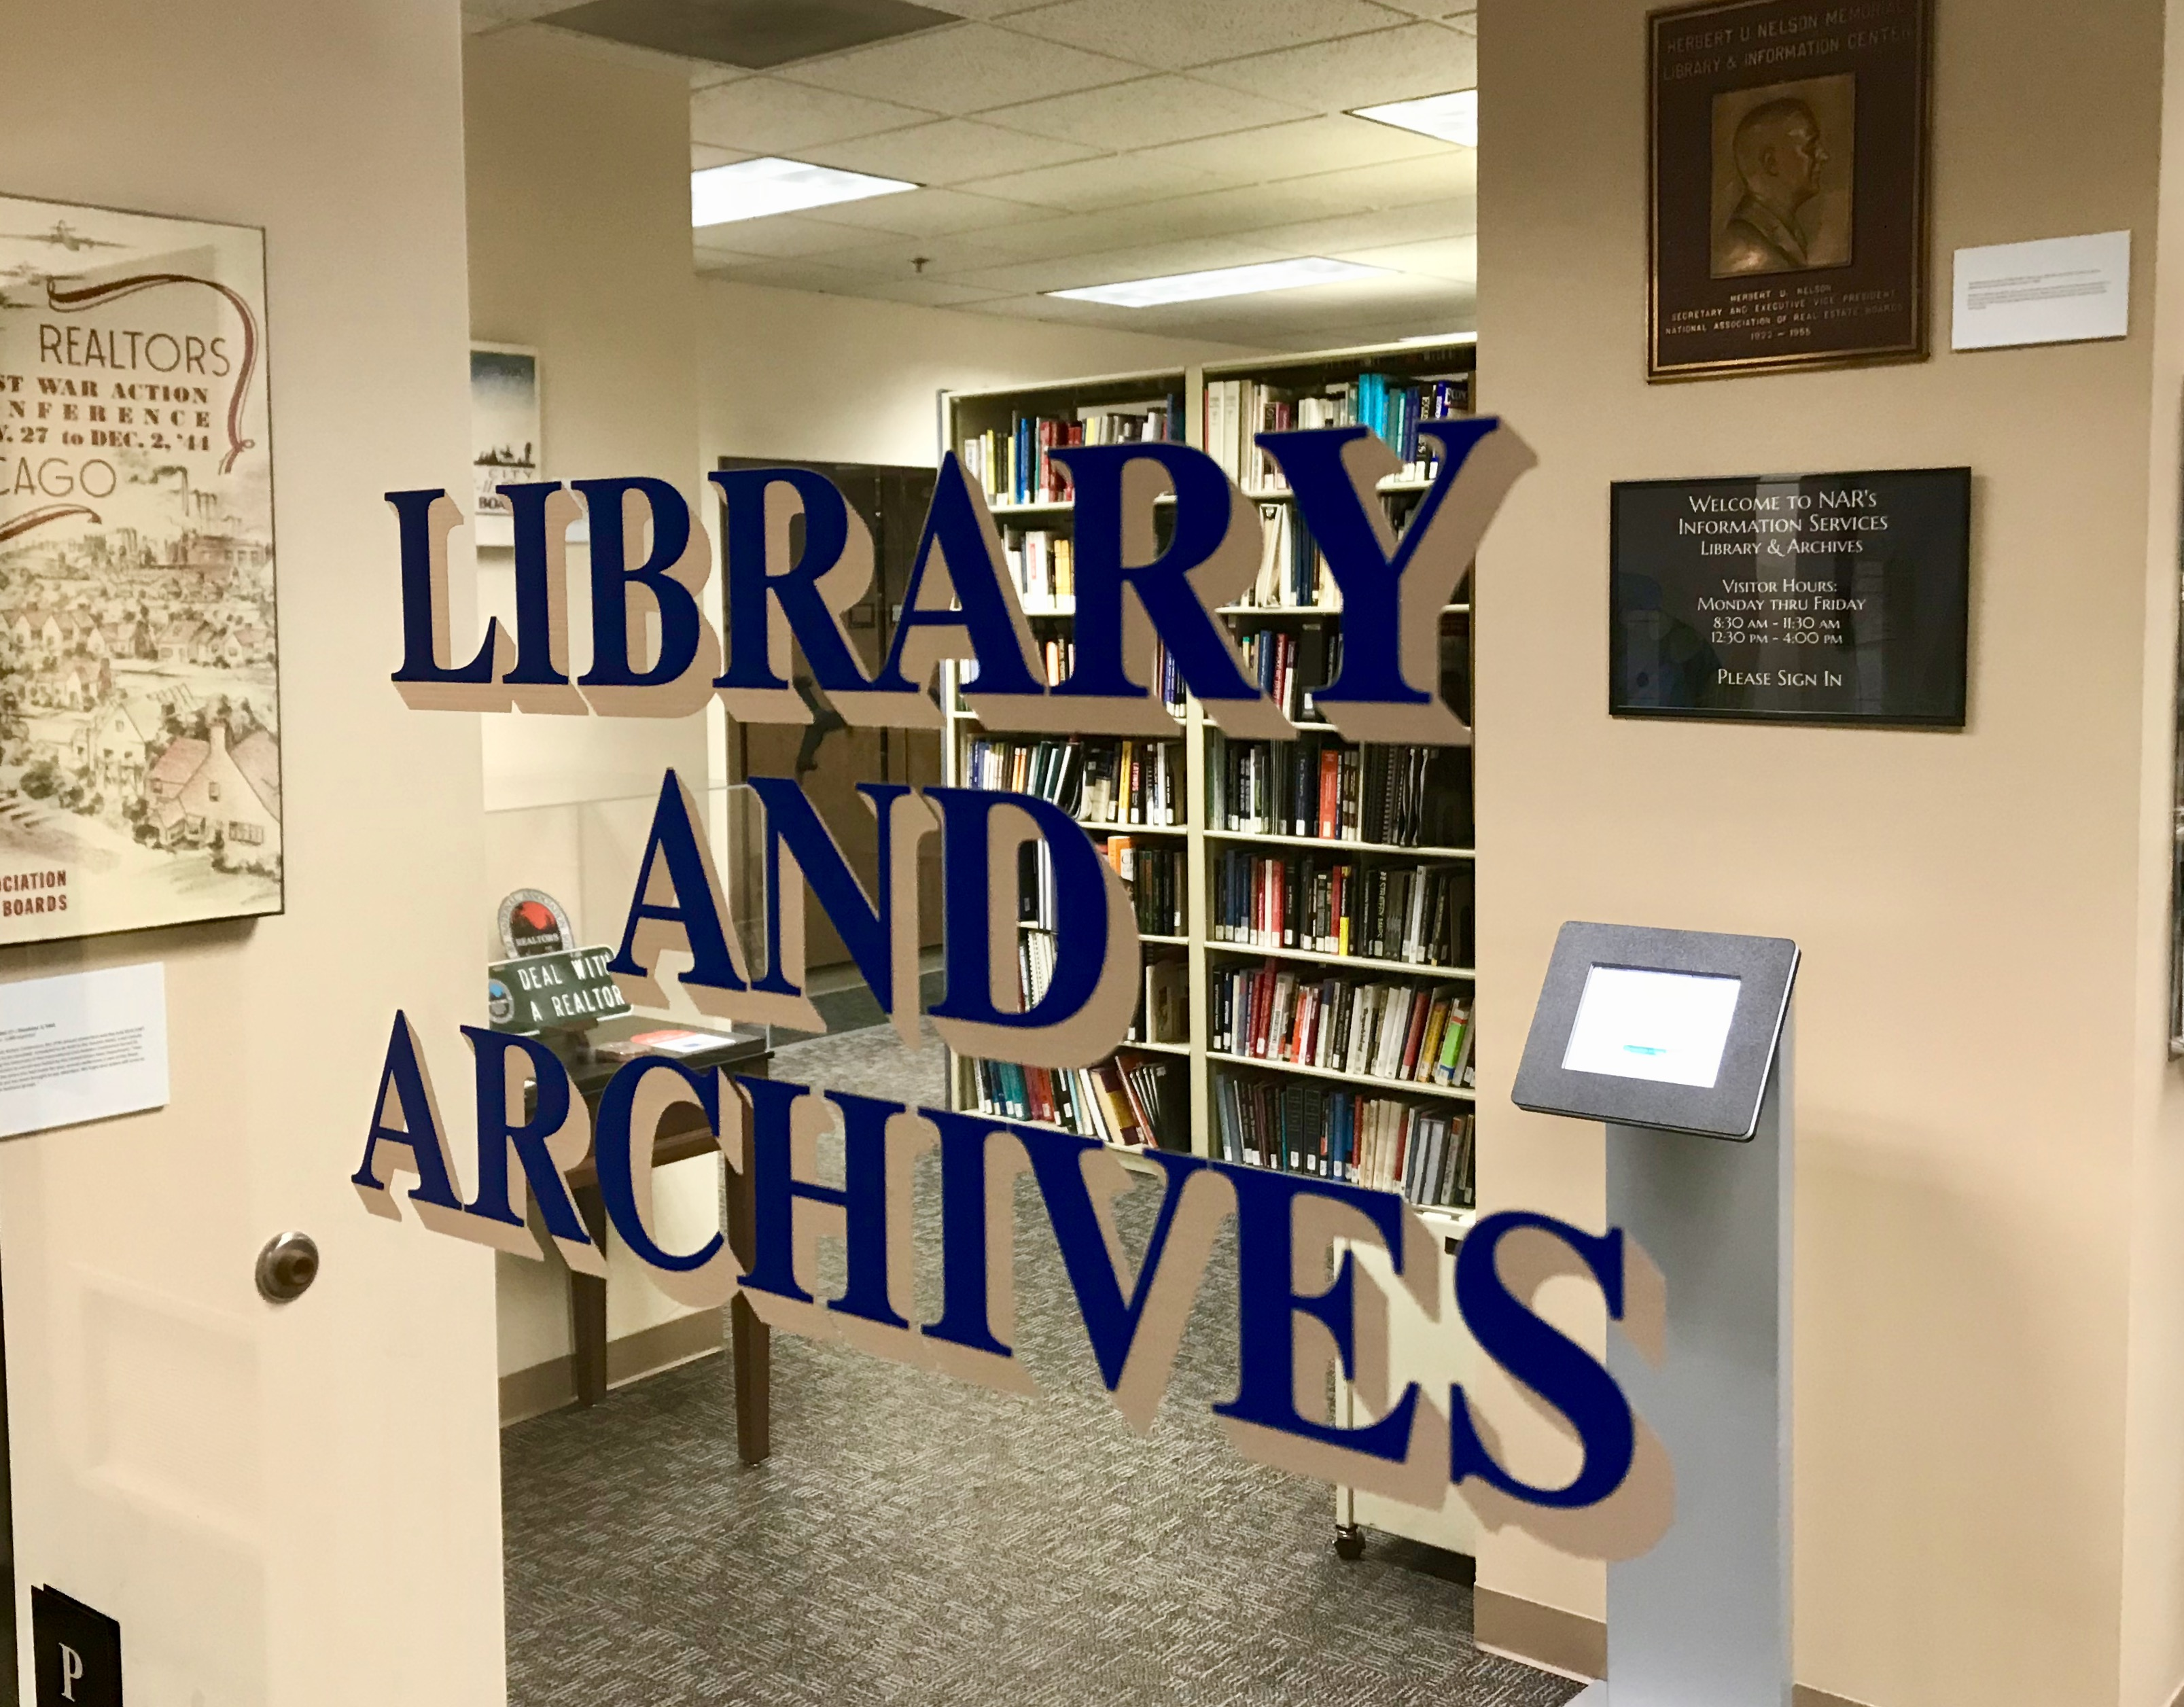 NAR Library & Archives Entrance.